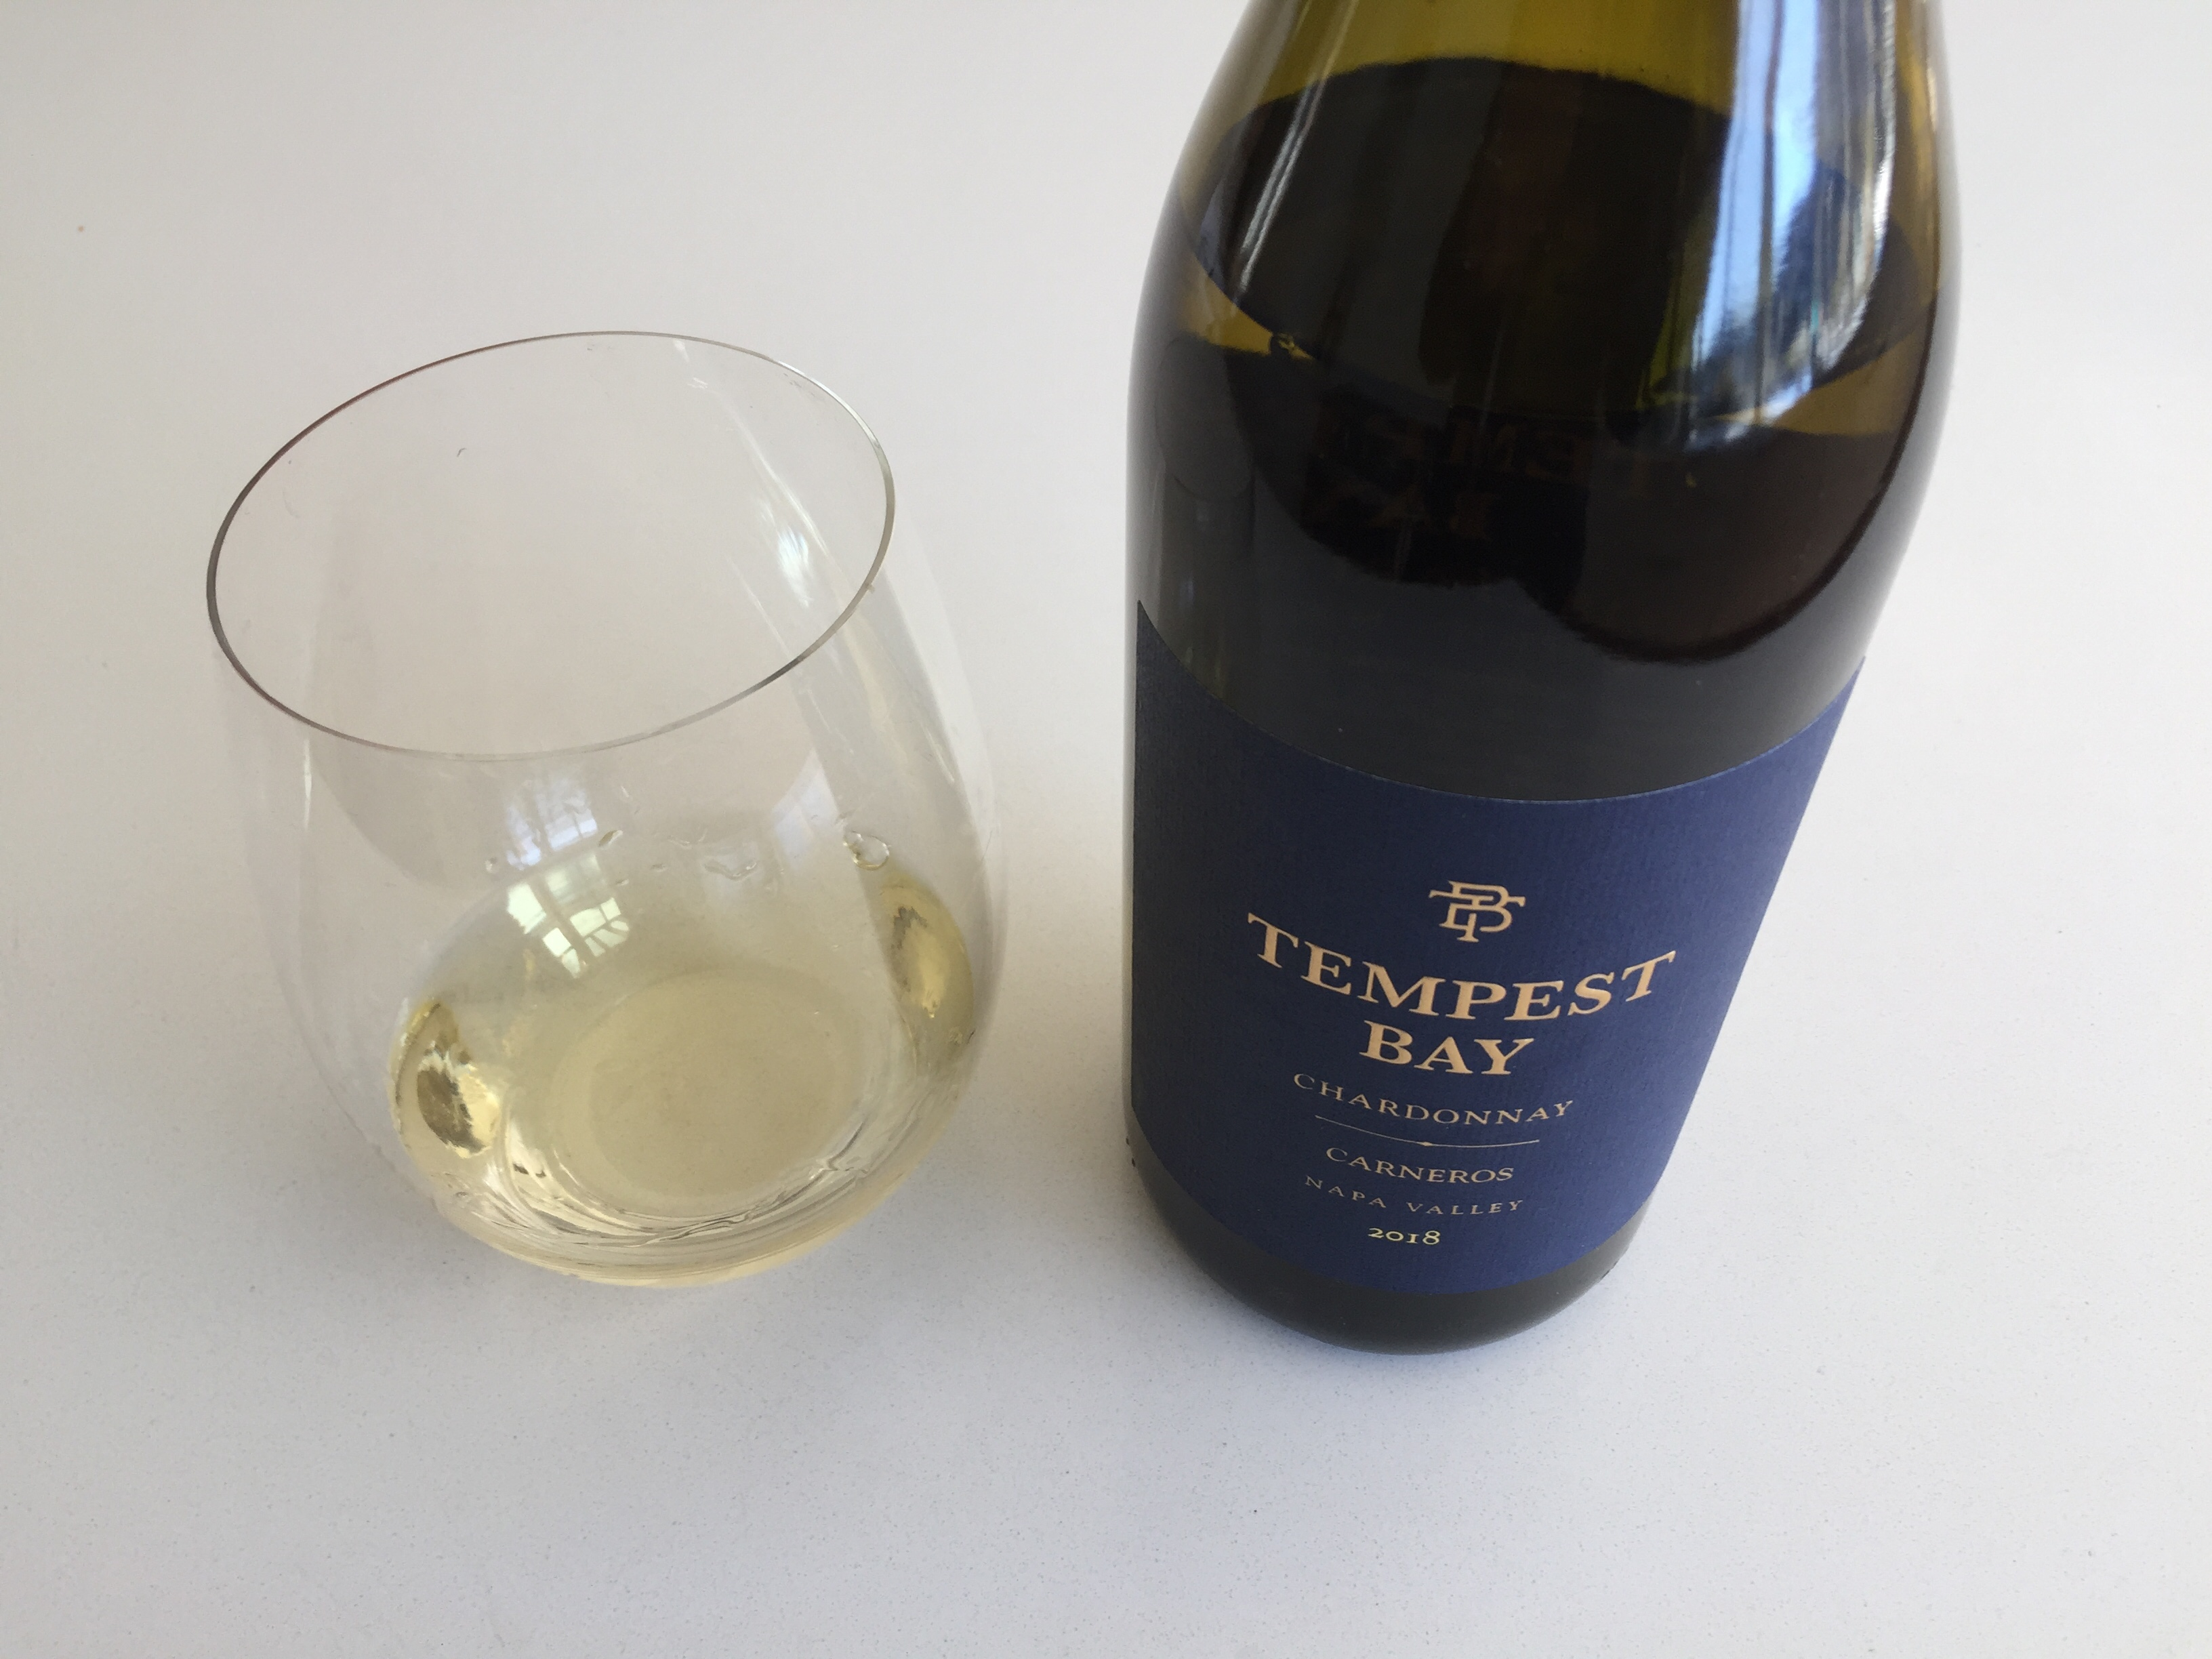 Glass and bottle of 2018 Tempest Bay Carneros Chardonnay from Trader Joe's